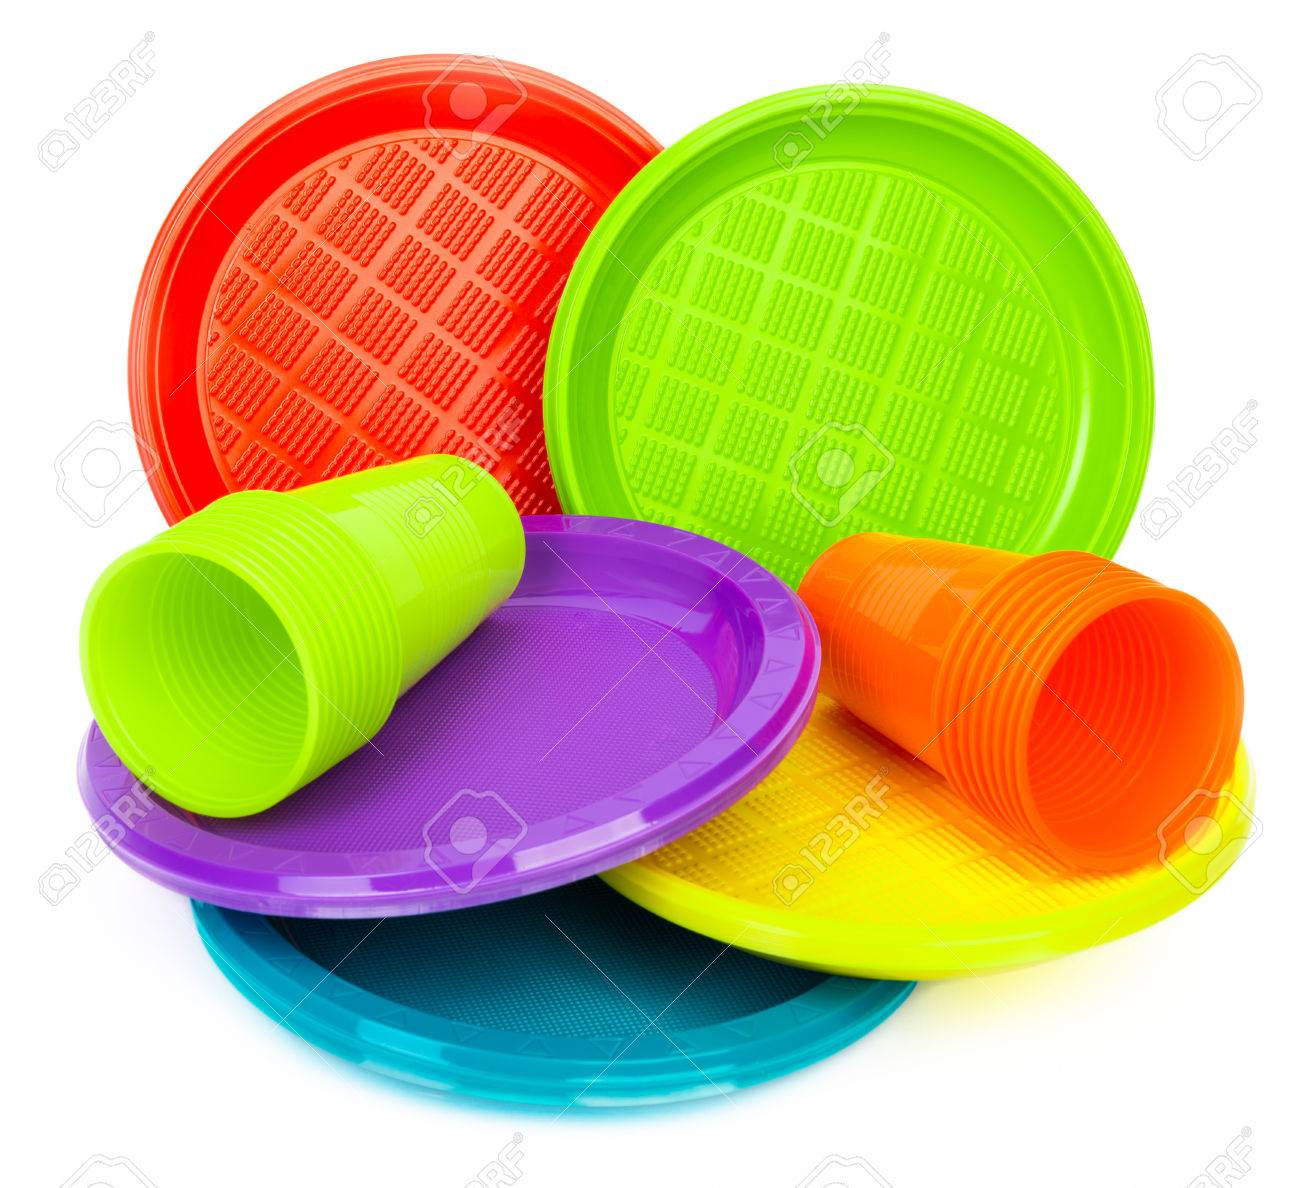 Disposable bright plastic plates and cups on white Stock Photo - 32021380  sc 1 st  123RF.com & Disposable Bright Plastic Plates And Cups On White Stock Photo ...